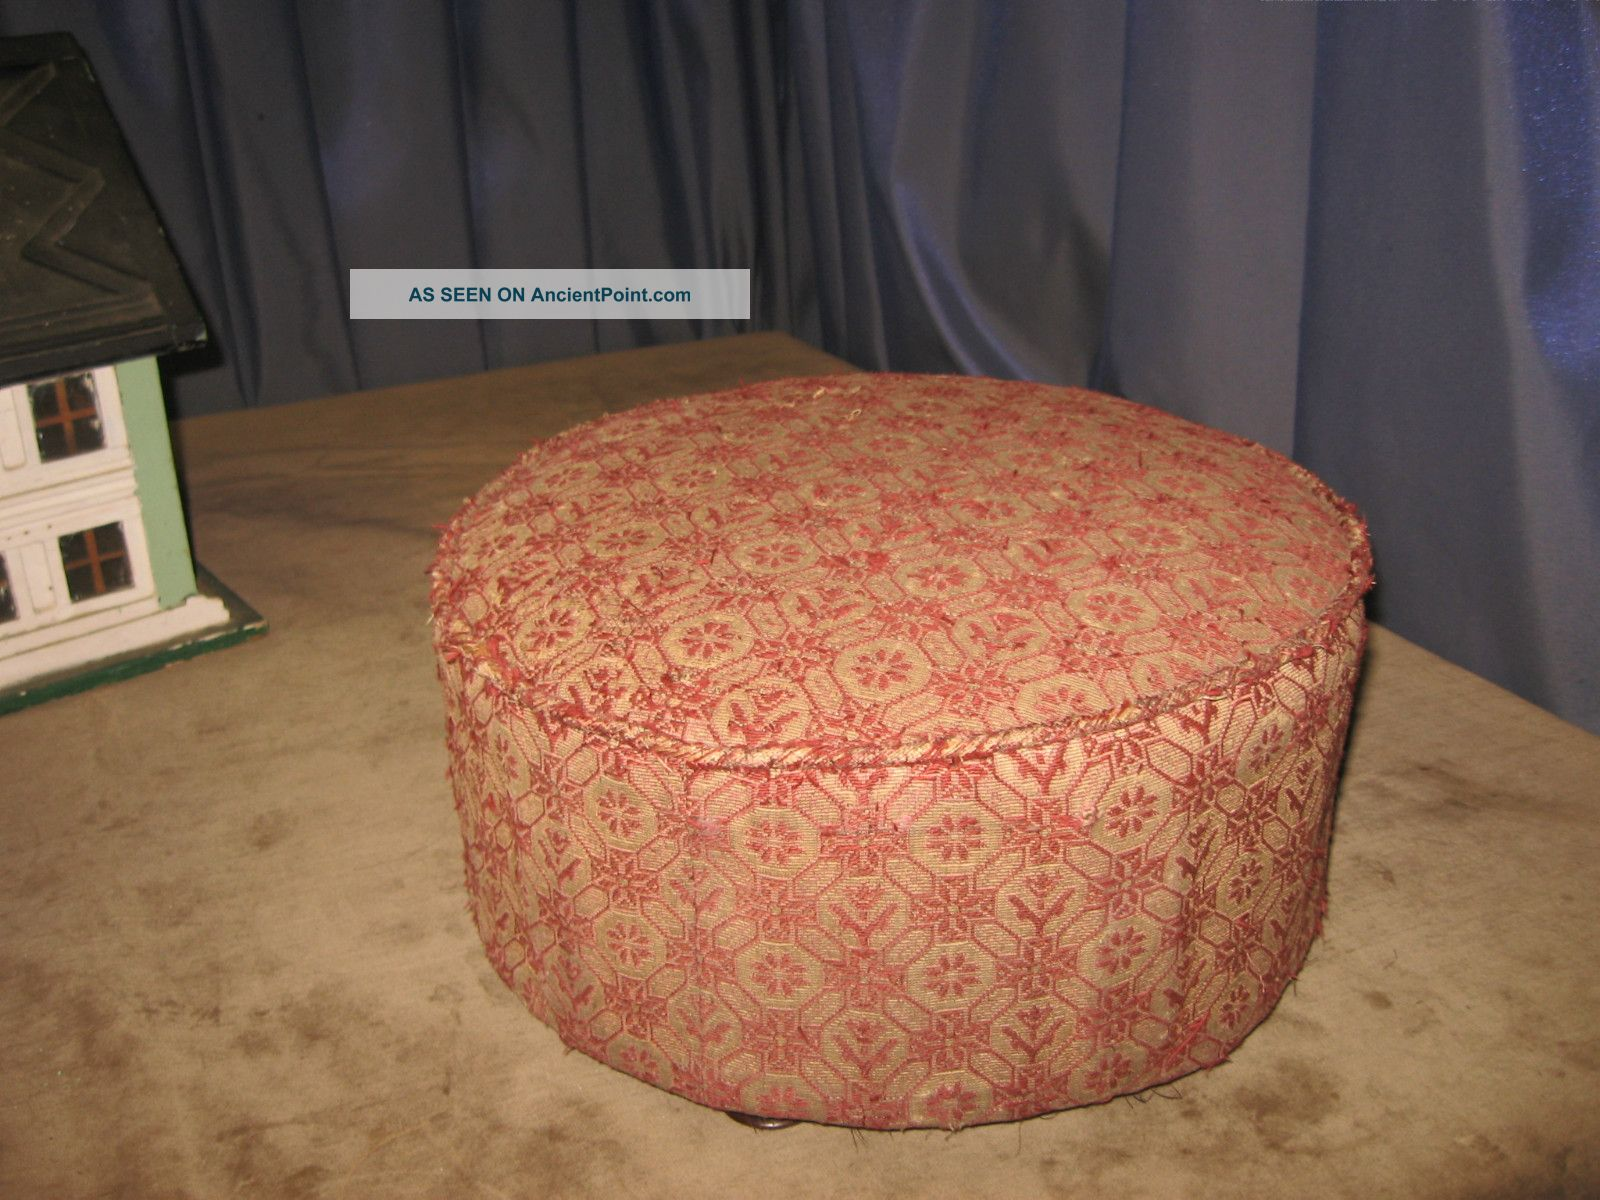 Antique 1800s Victorian Round Footstool Condition Walnut Feet & Fabric 1800-1899 photo